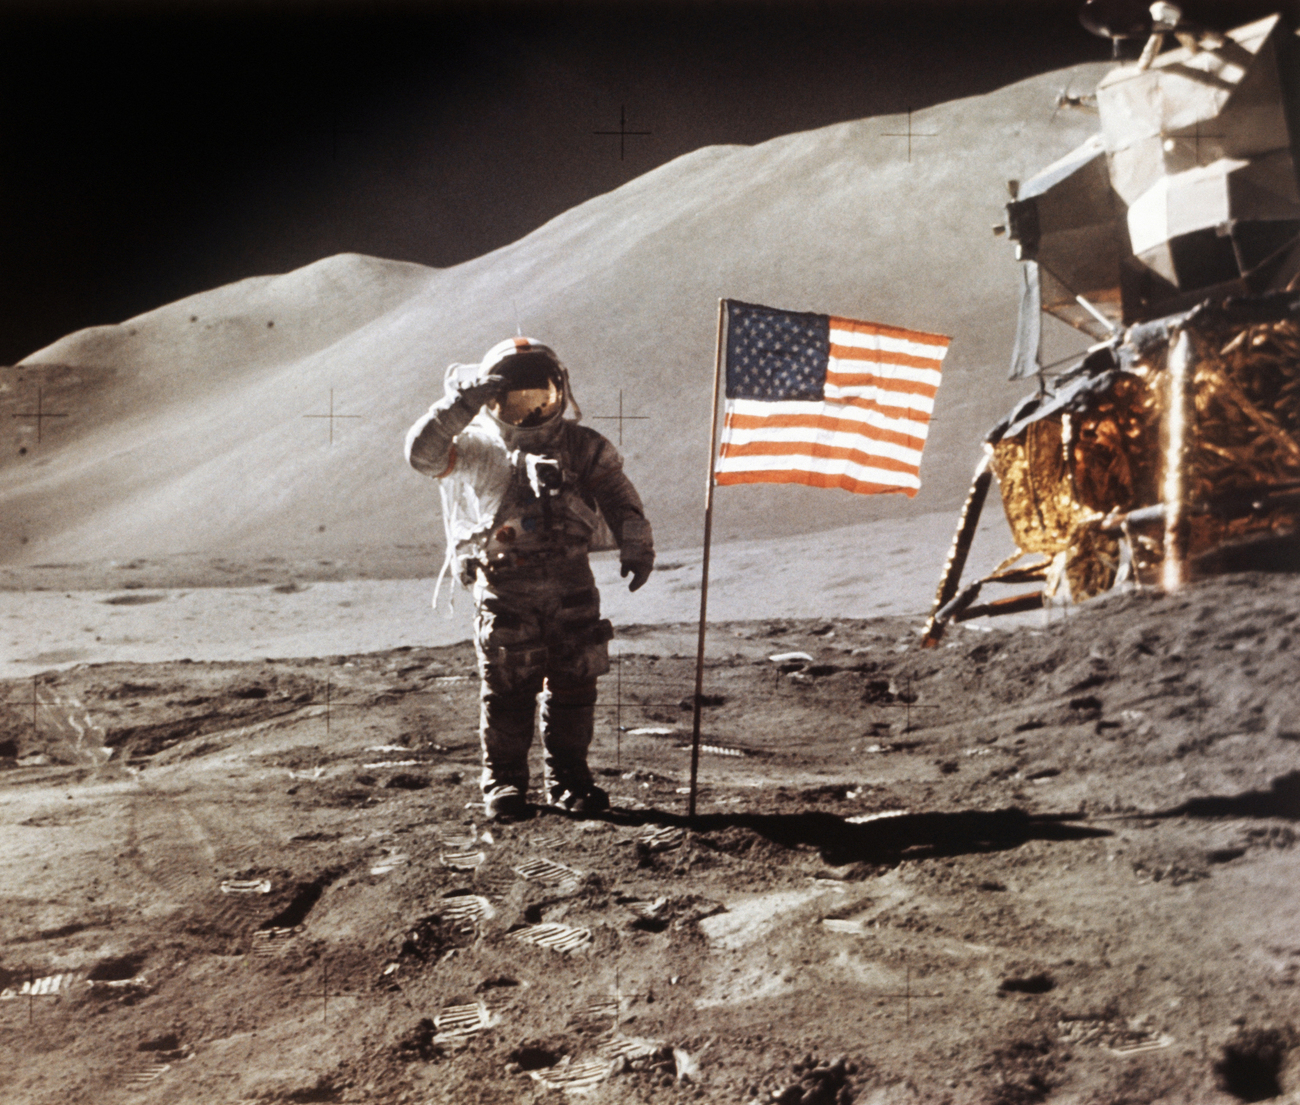 Le 30 juillet 1971, le pilote du module de la mission Apollo 15, James Irwin est photographié sur la Lune. (Image d'illustration).